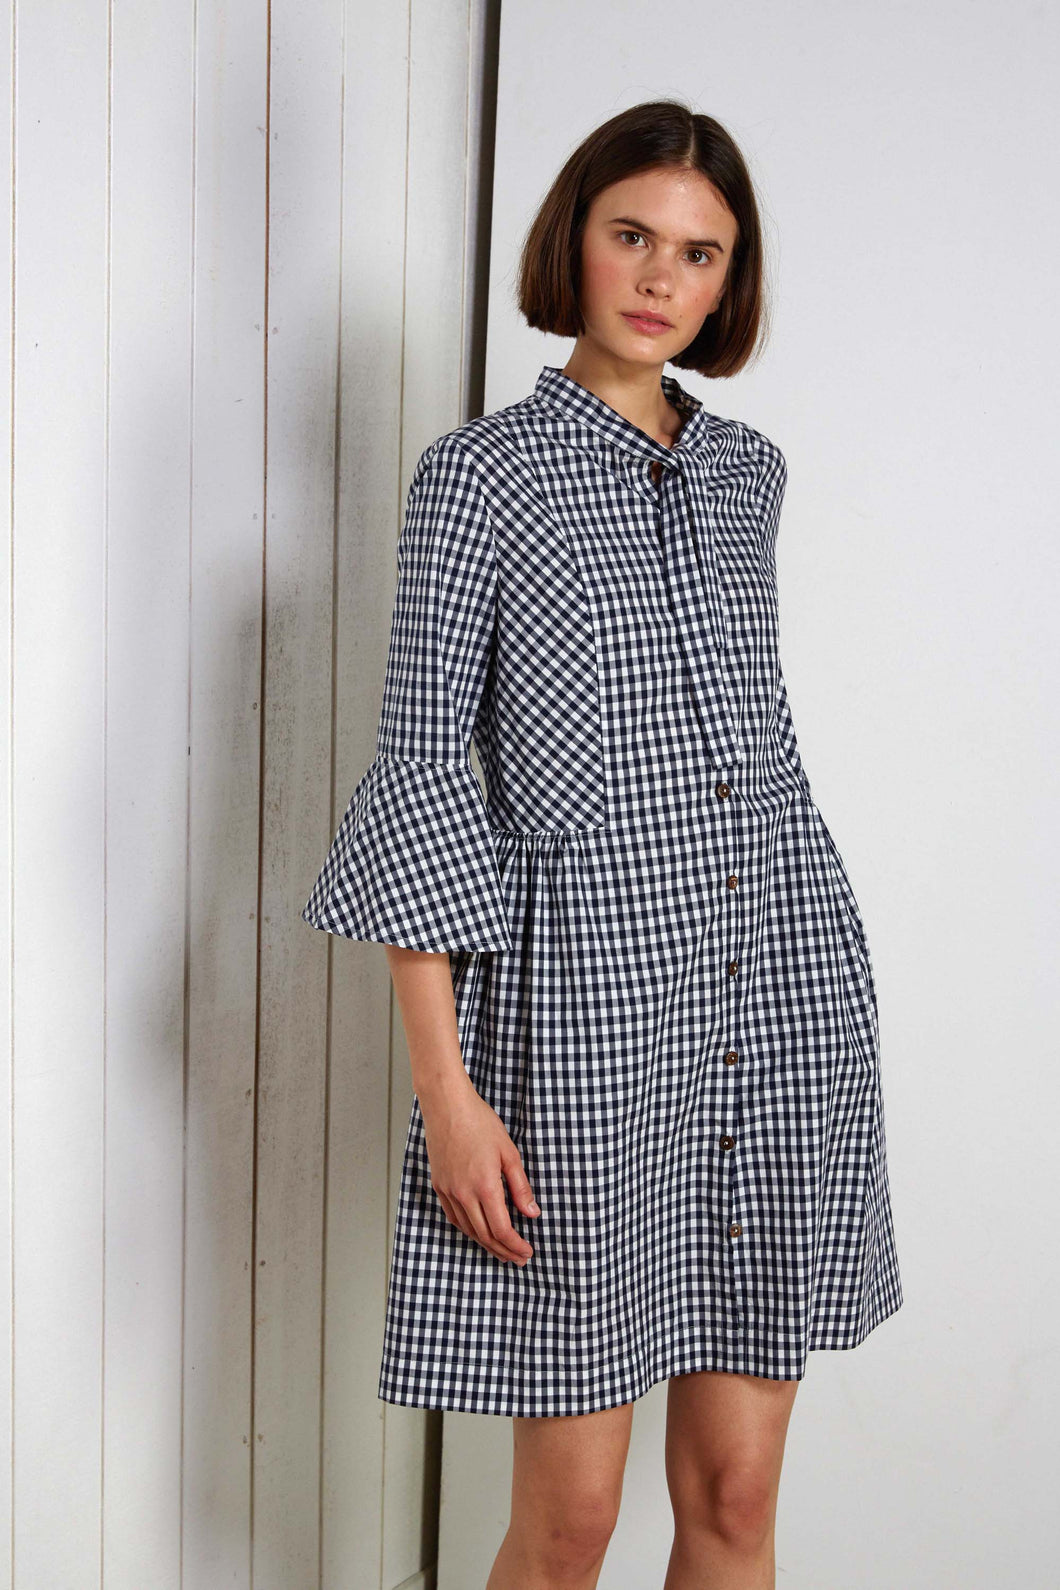 Tabouleh dress, gingham